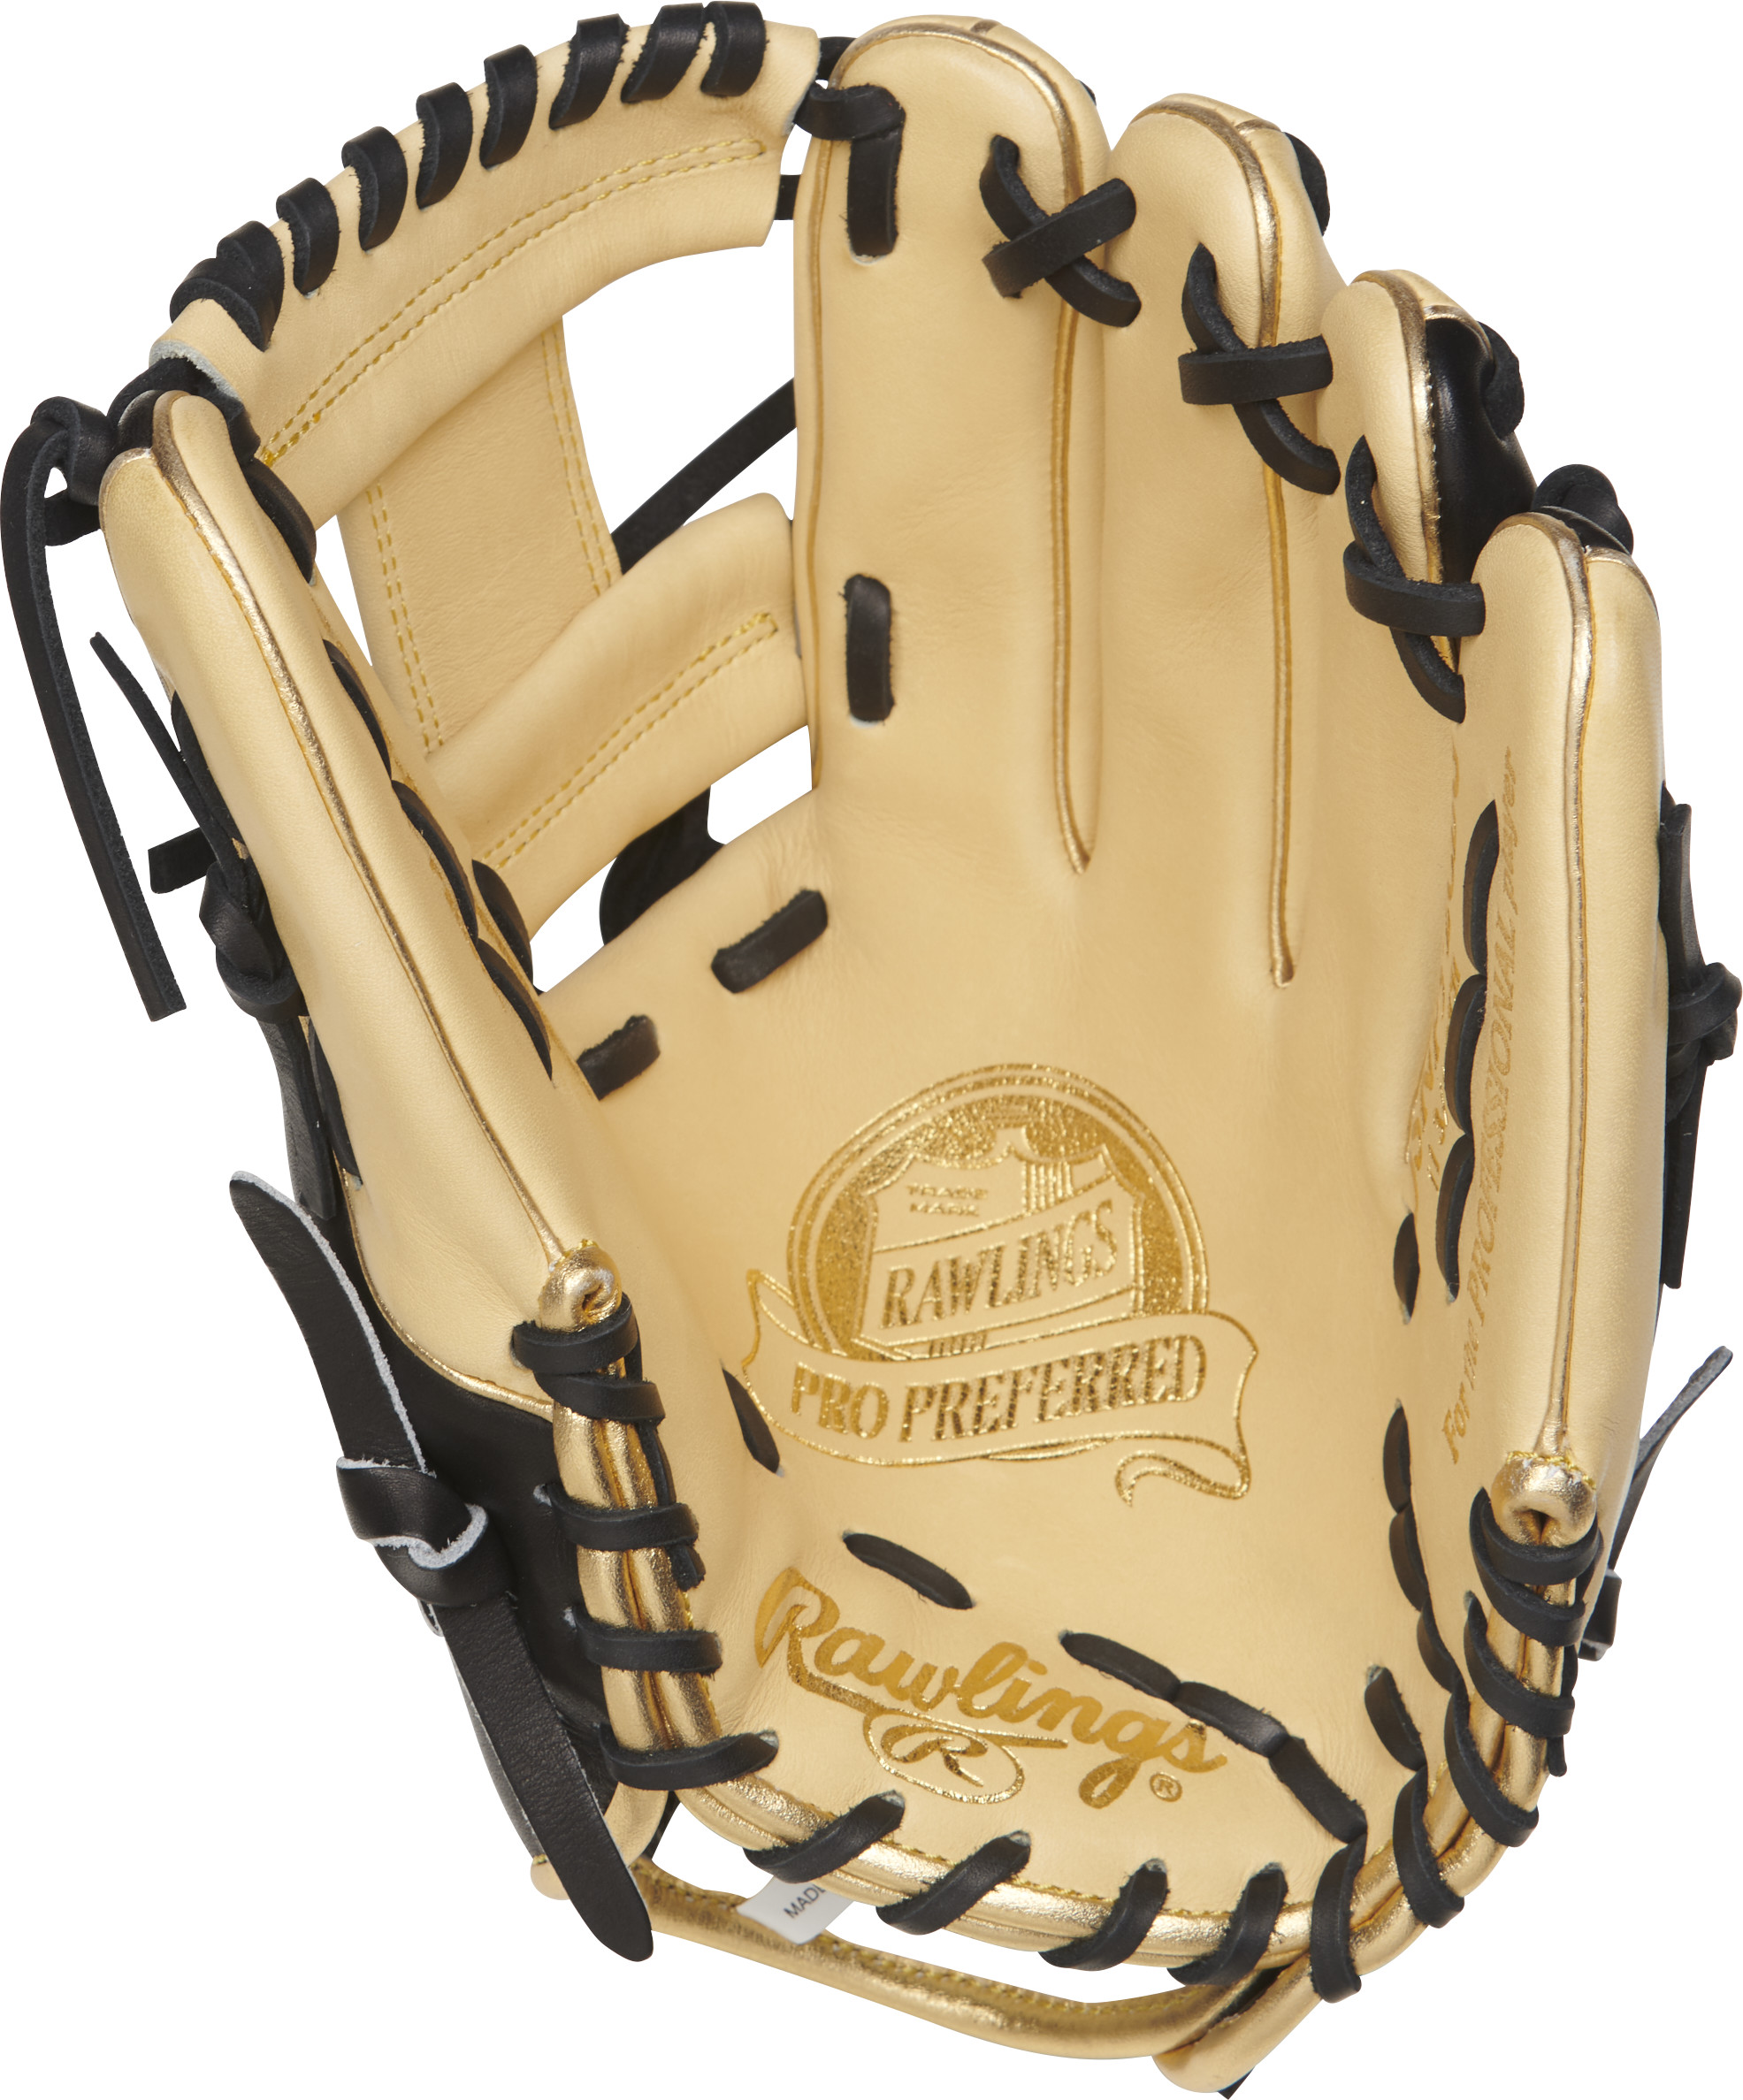 http://www.bestbatdeals.com/images/gloves/rawlings/PROSNP5-2CBG-1.jpg